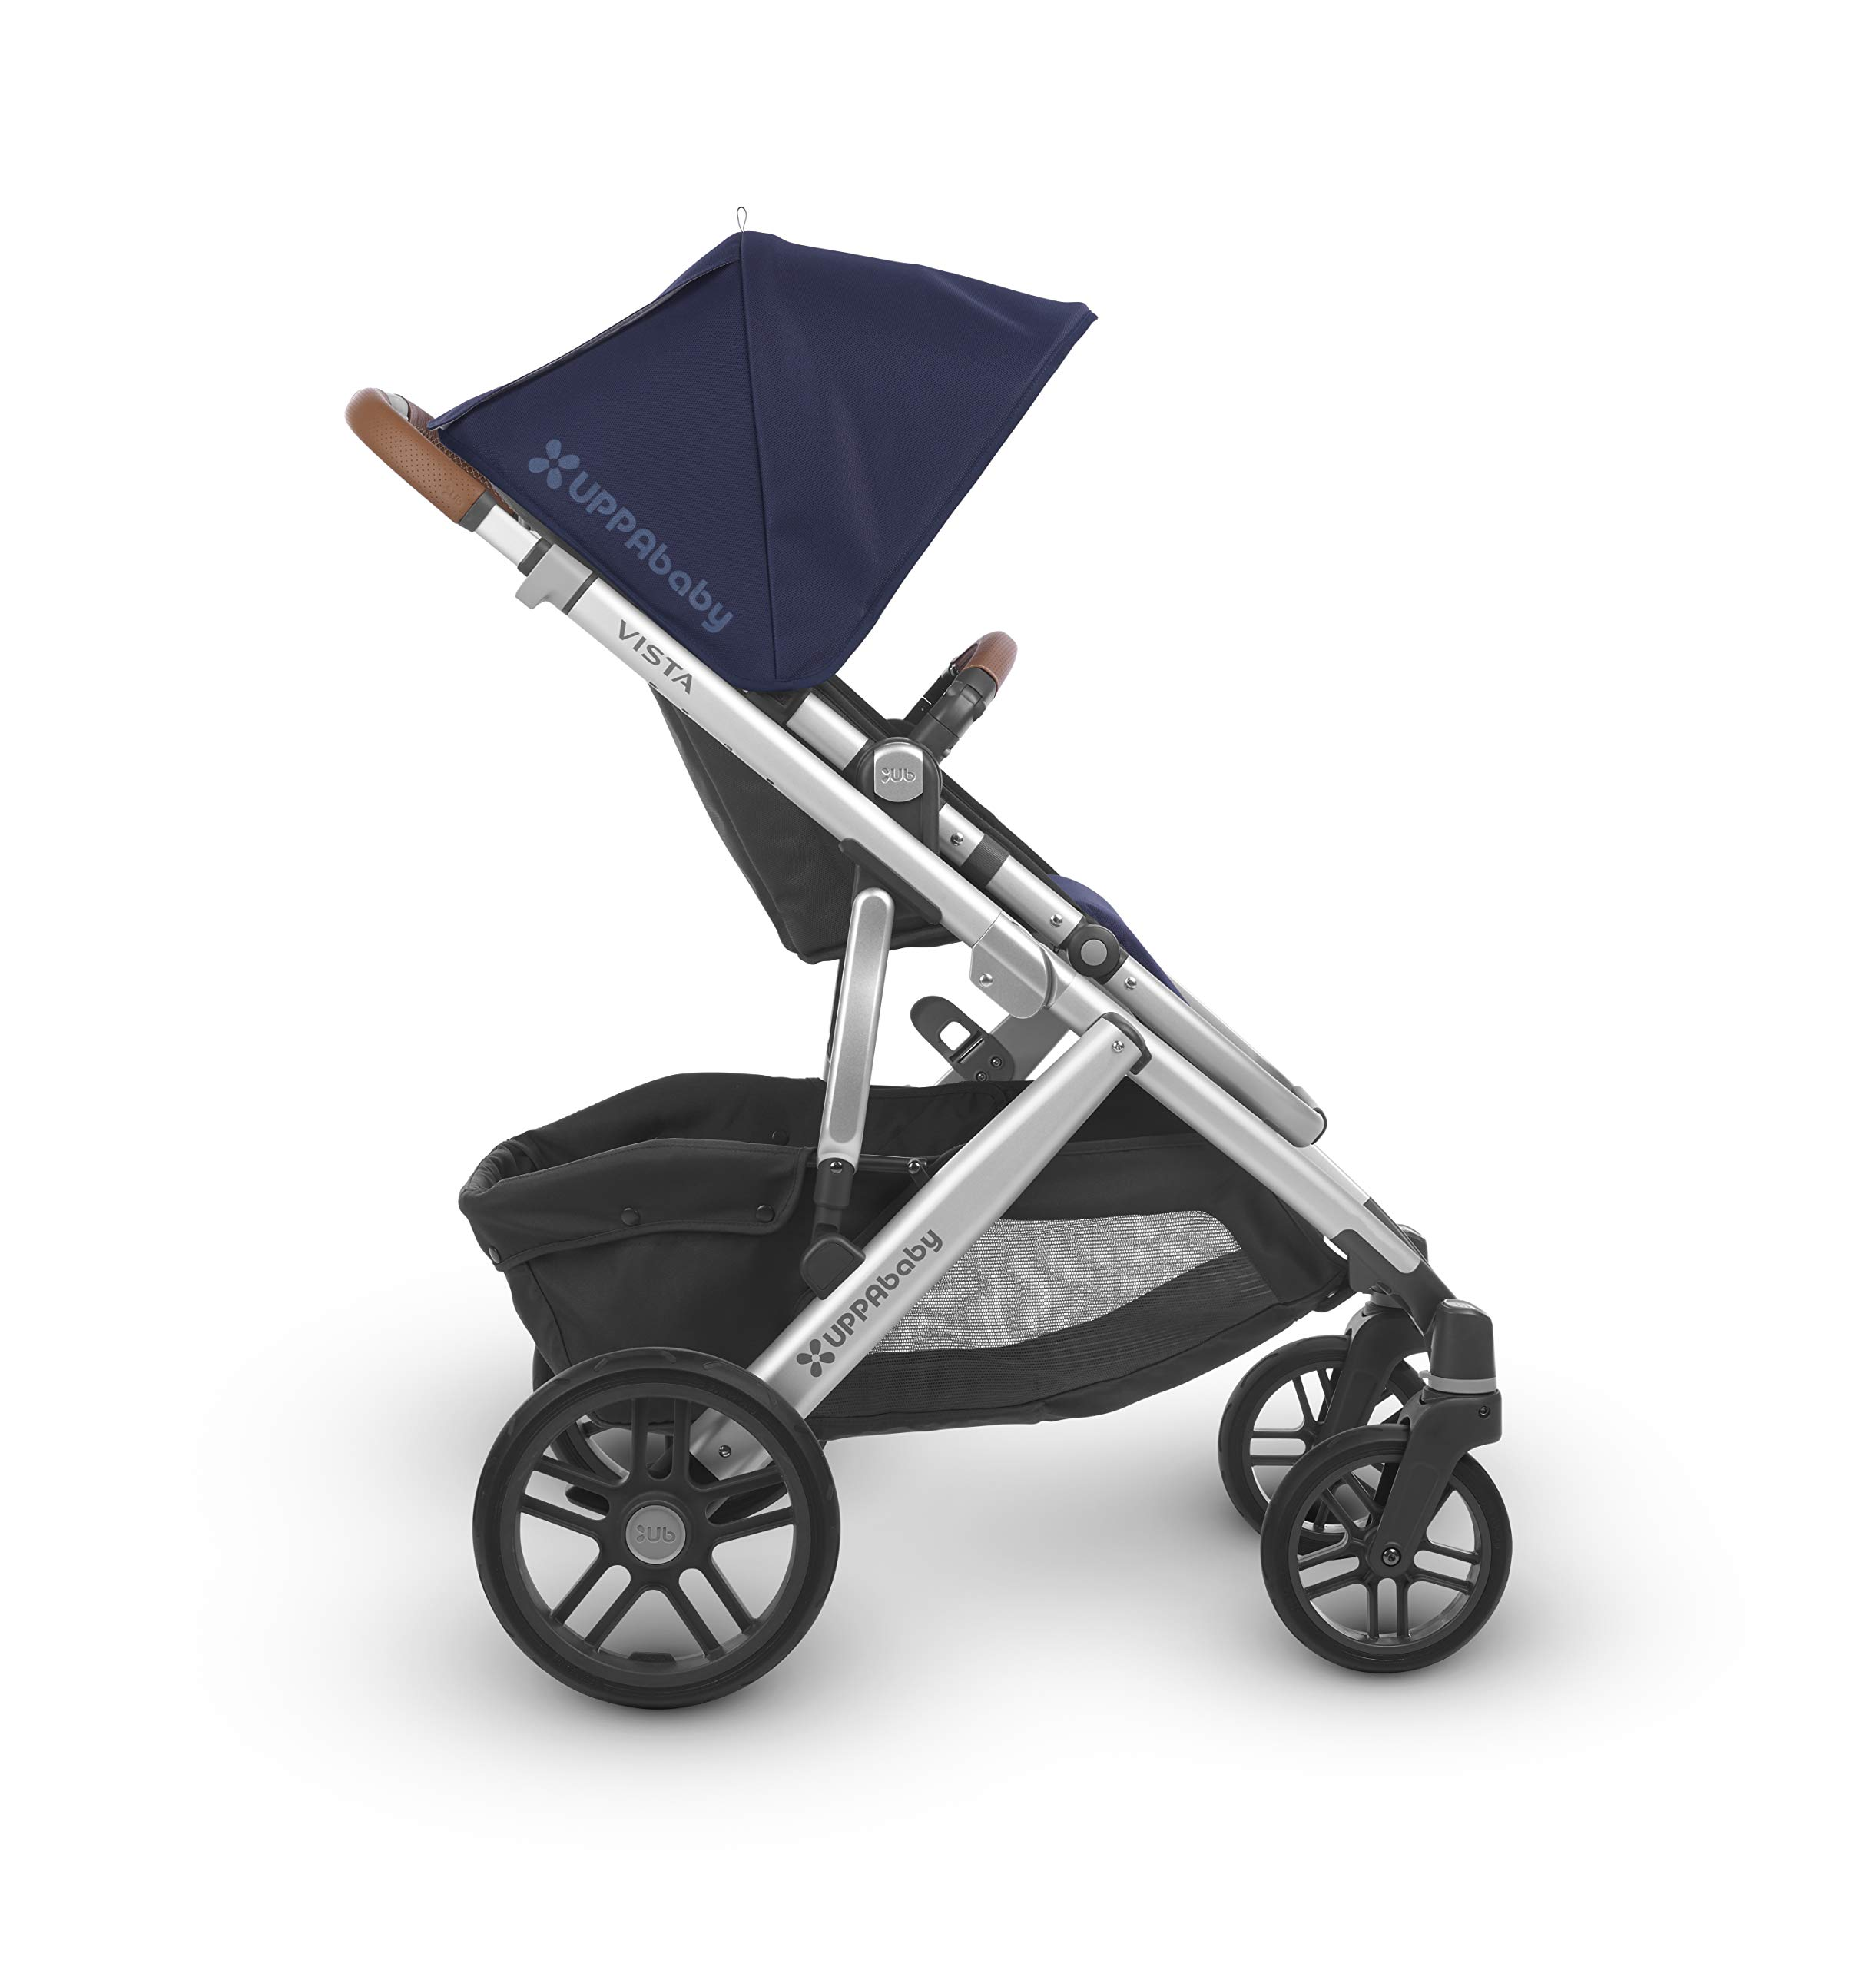 Uppababy Pushchair, Taylor Navy UPPAbaby A pushchair/ travel system with all weather protection Can be upgraded to carry two or three children with additional accessories Large basket 3